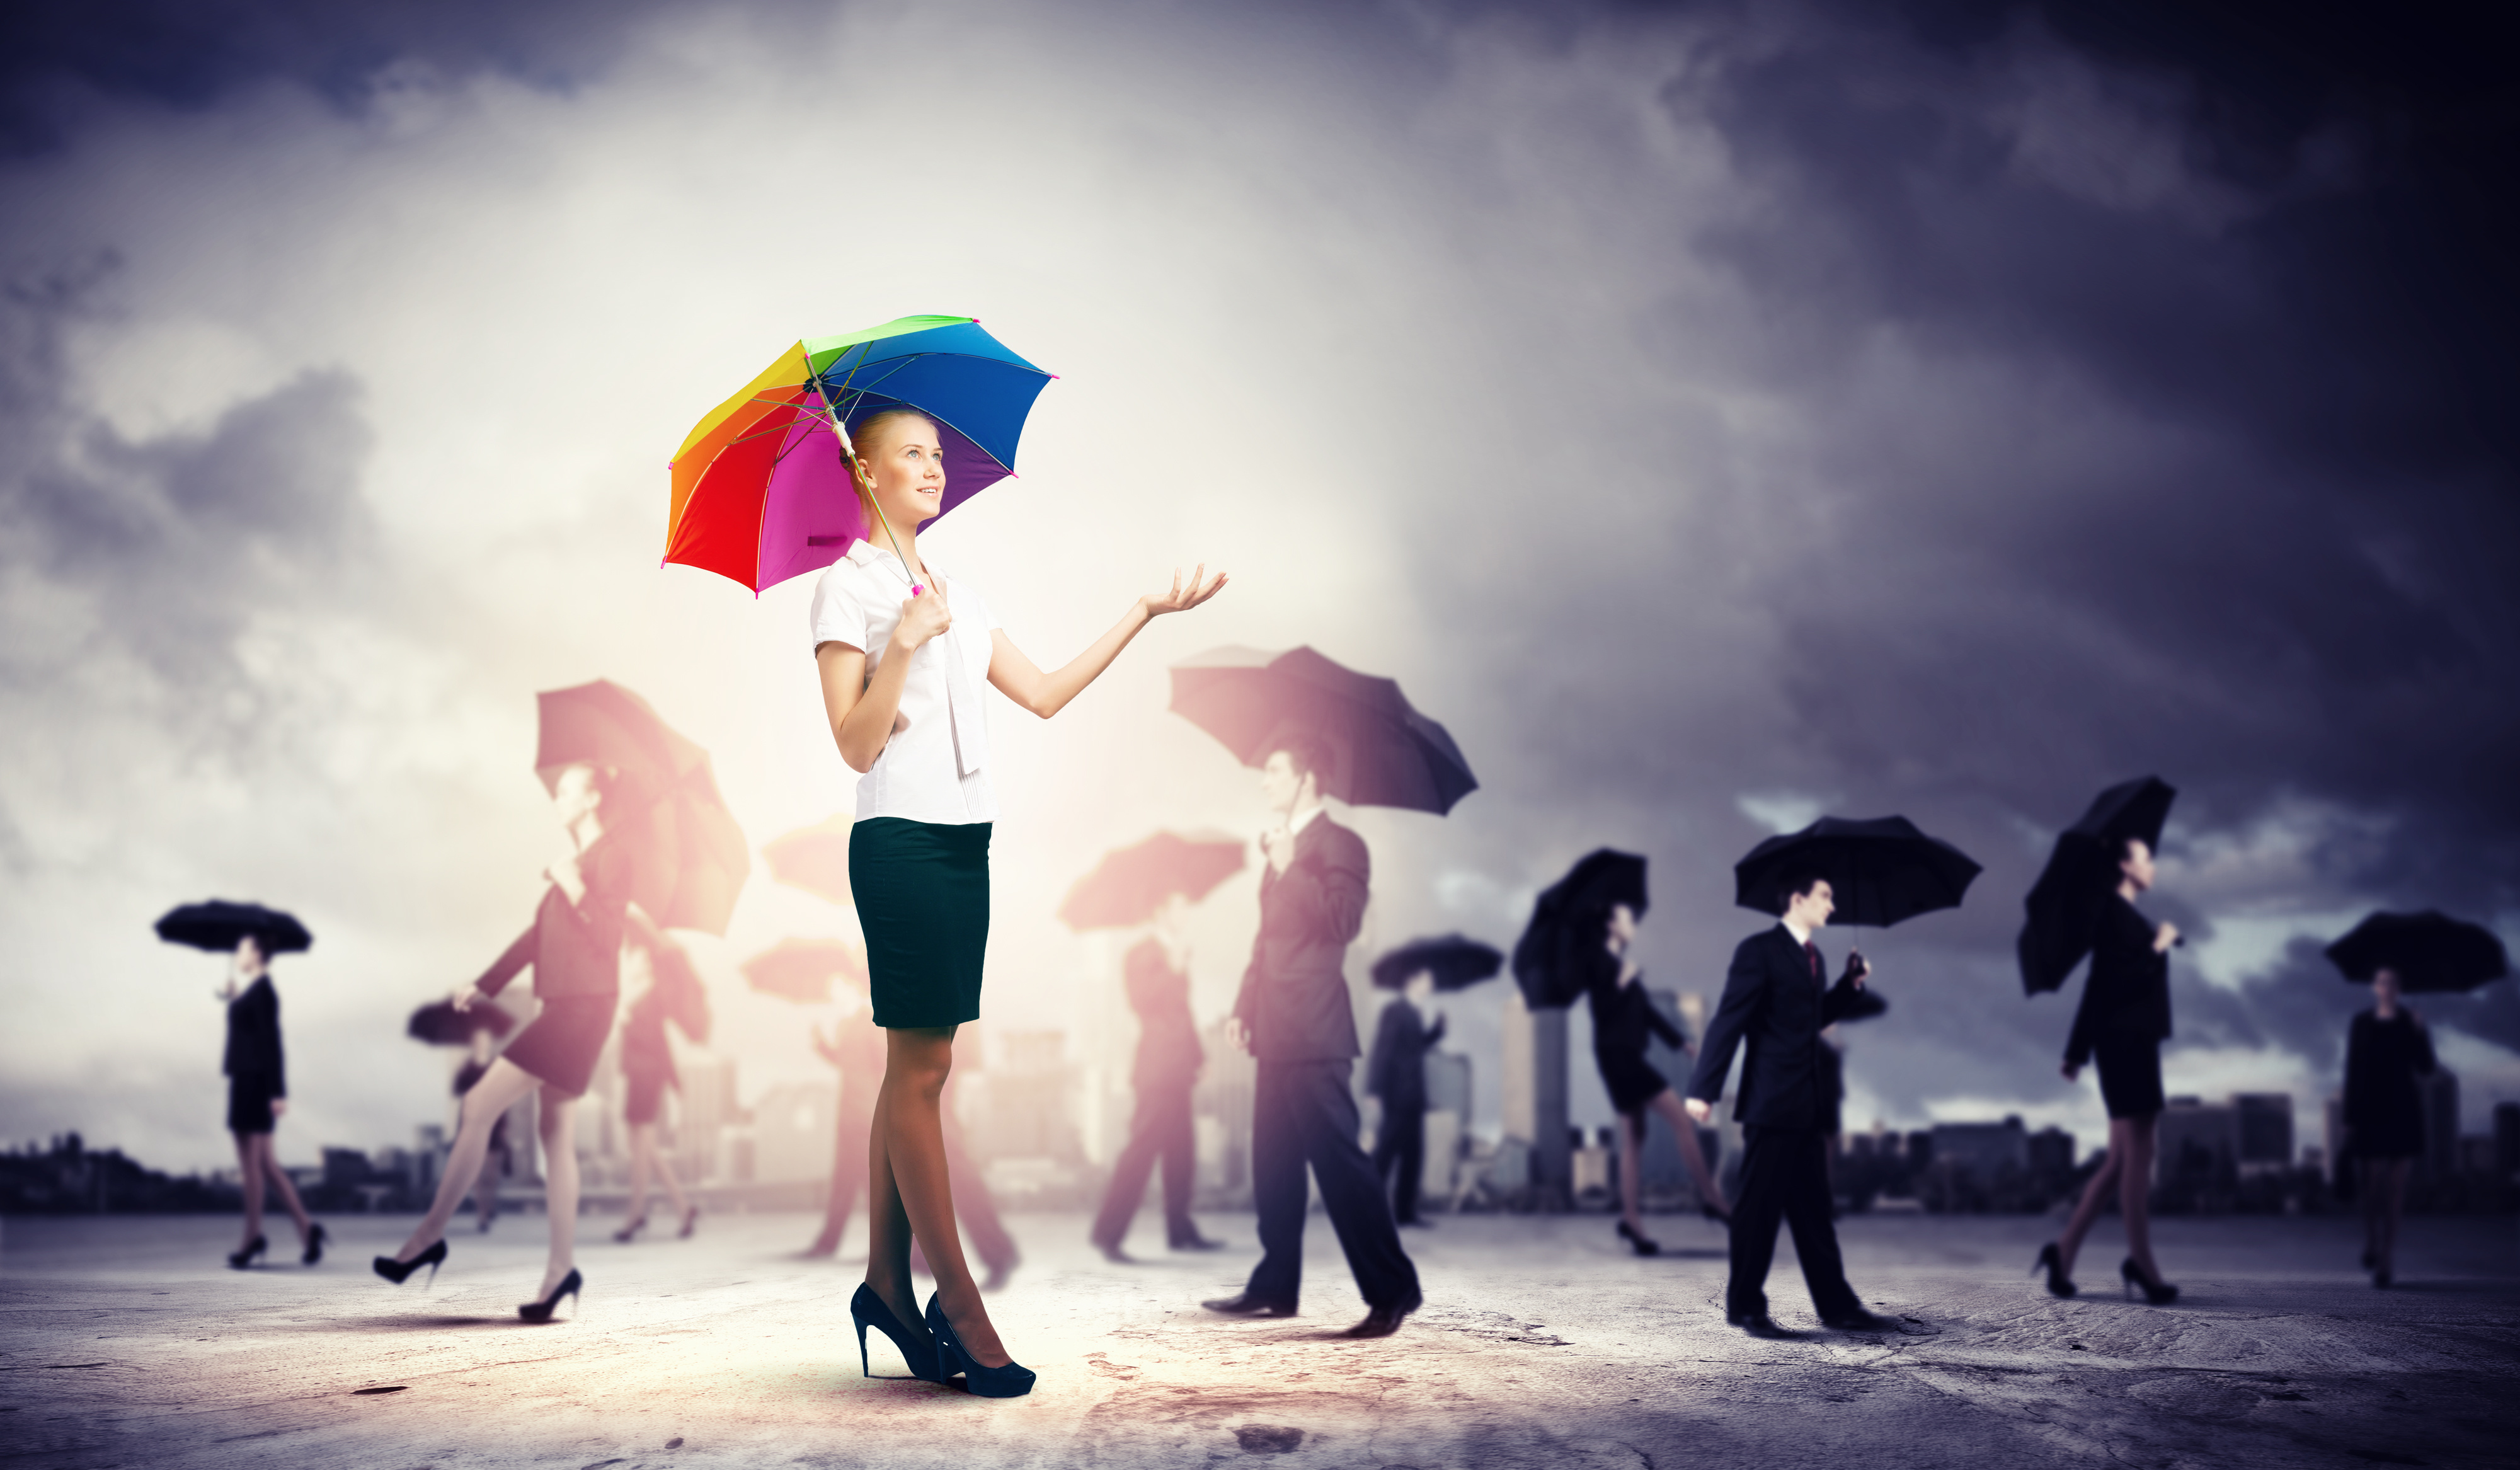 Many people in business attire holding up umbrellas